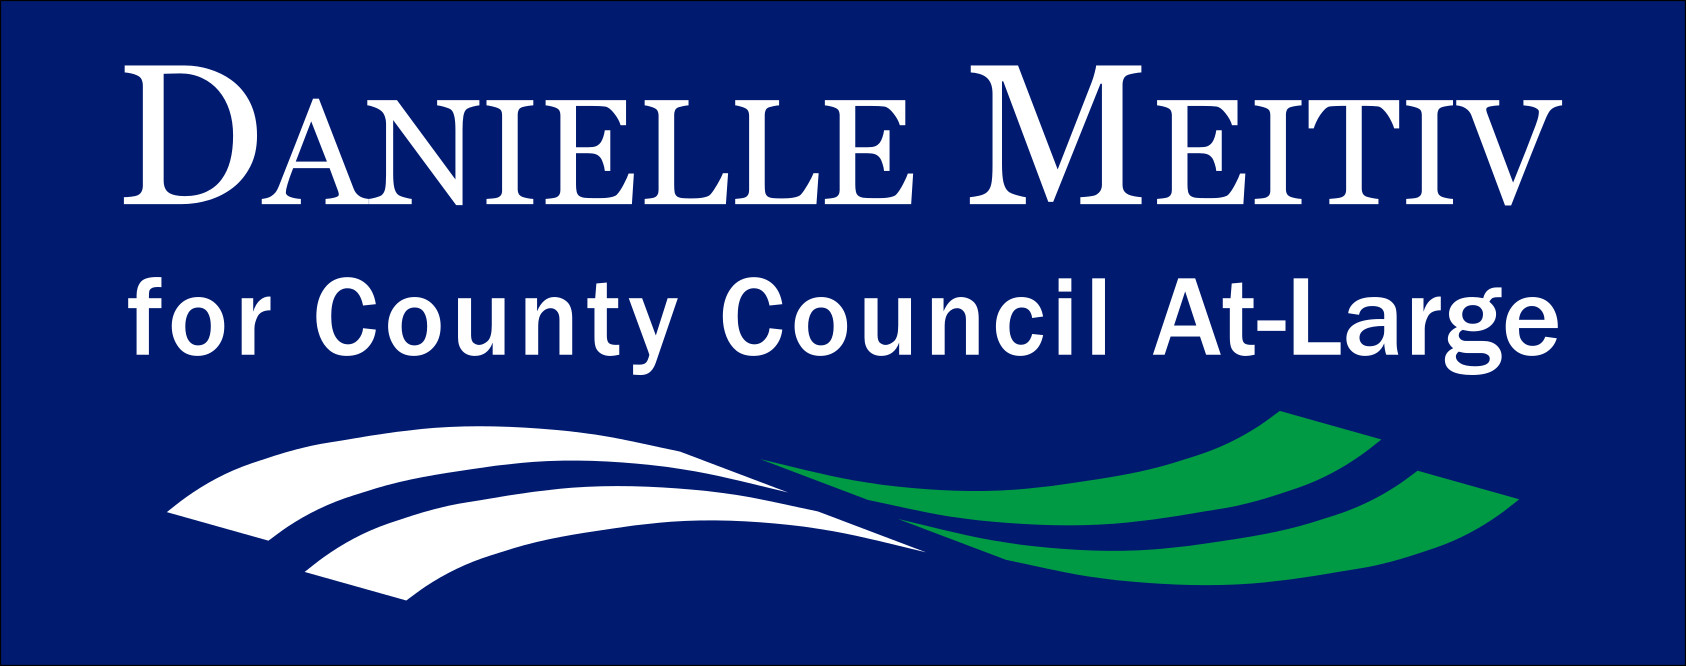 Meitiv for Montgomery Campaign for County Council At-Large